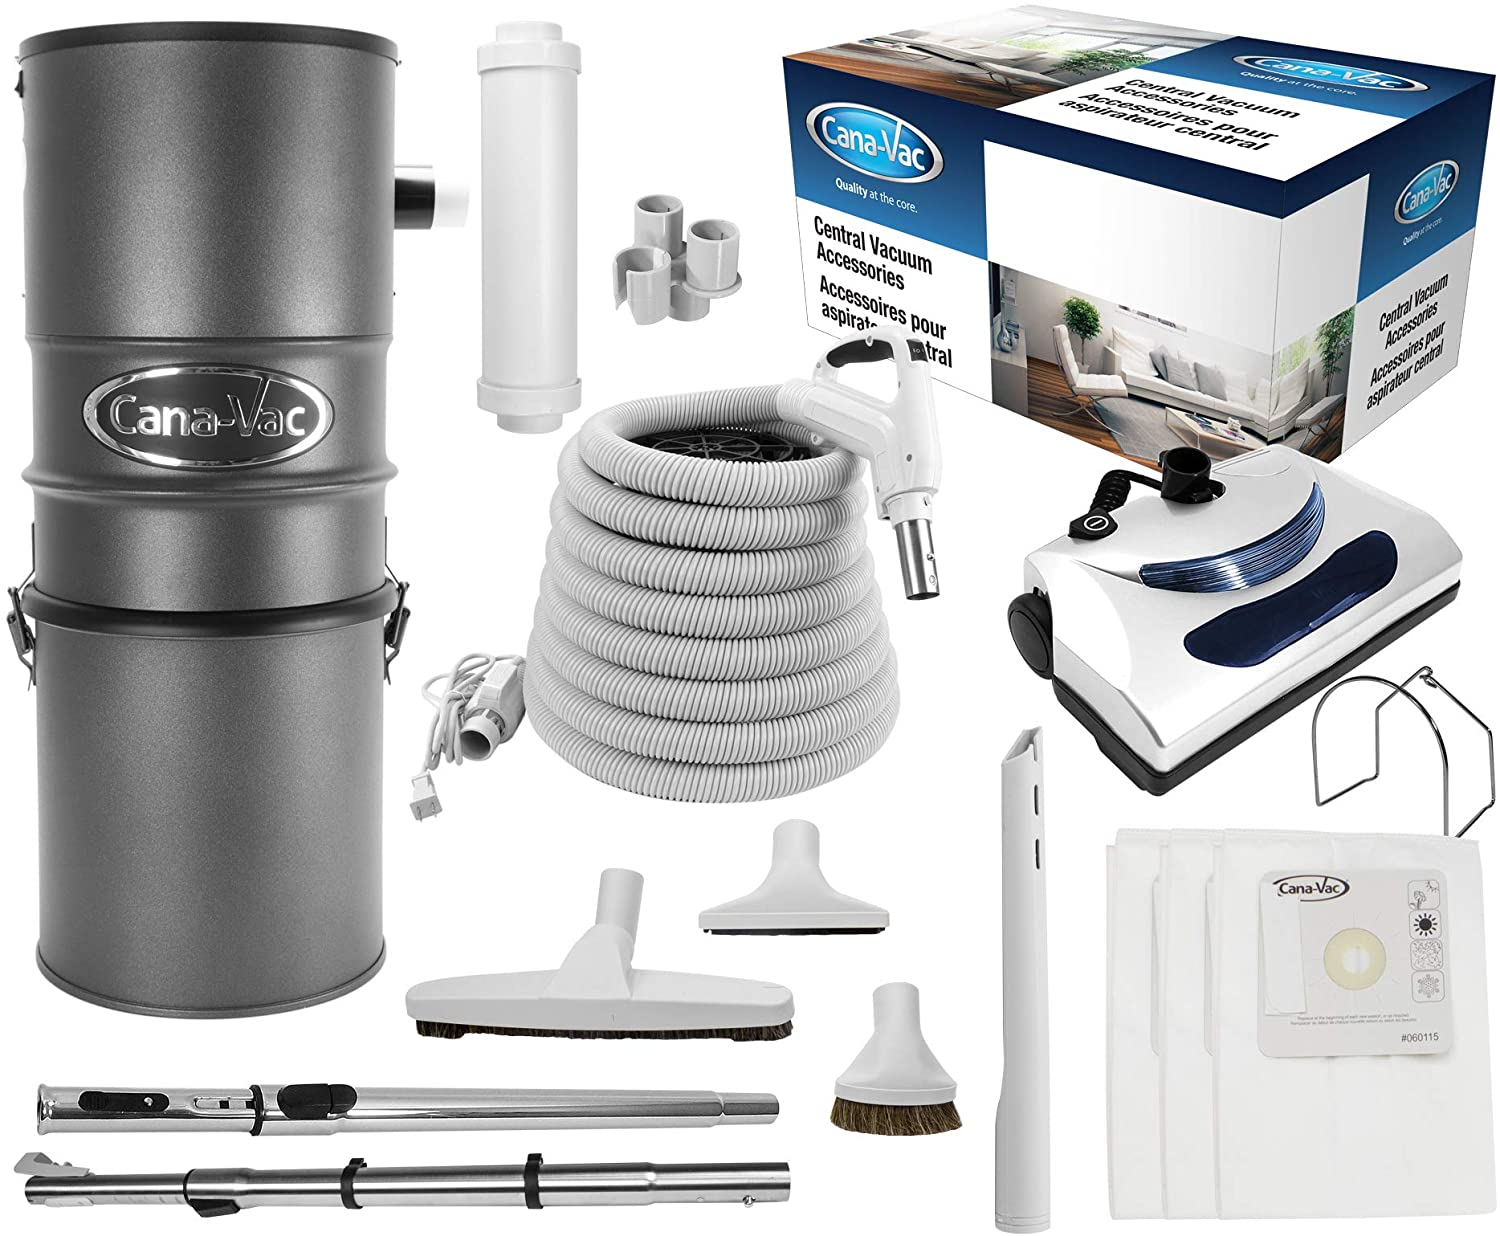 CanaVac Max 59% OFF CV700SP Ethos Series Central Cleaner Vacuum Special Campaign F Reliable -